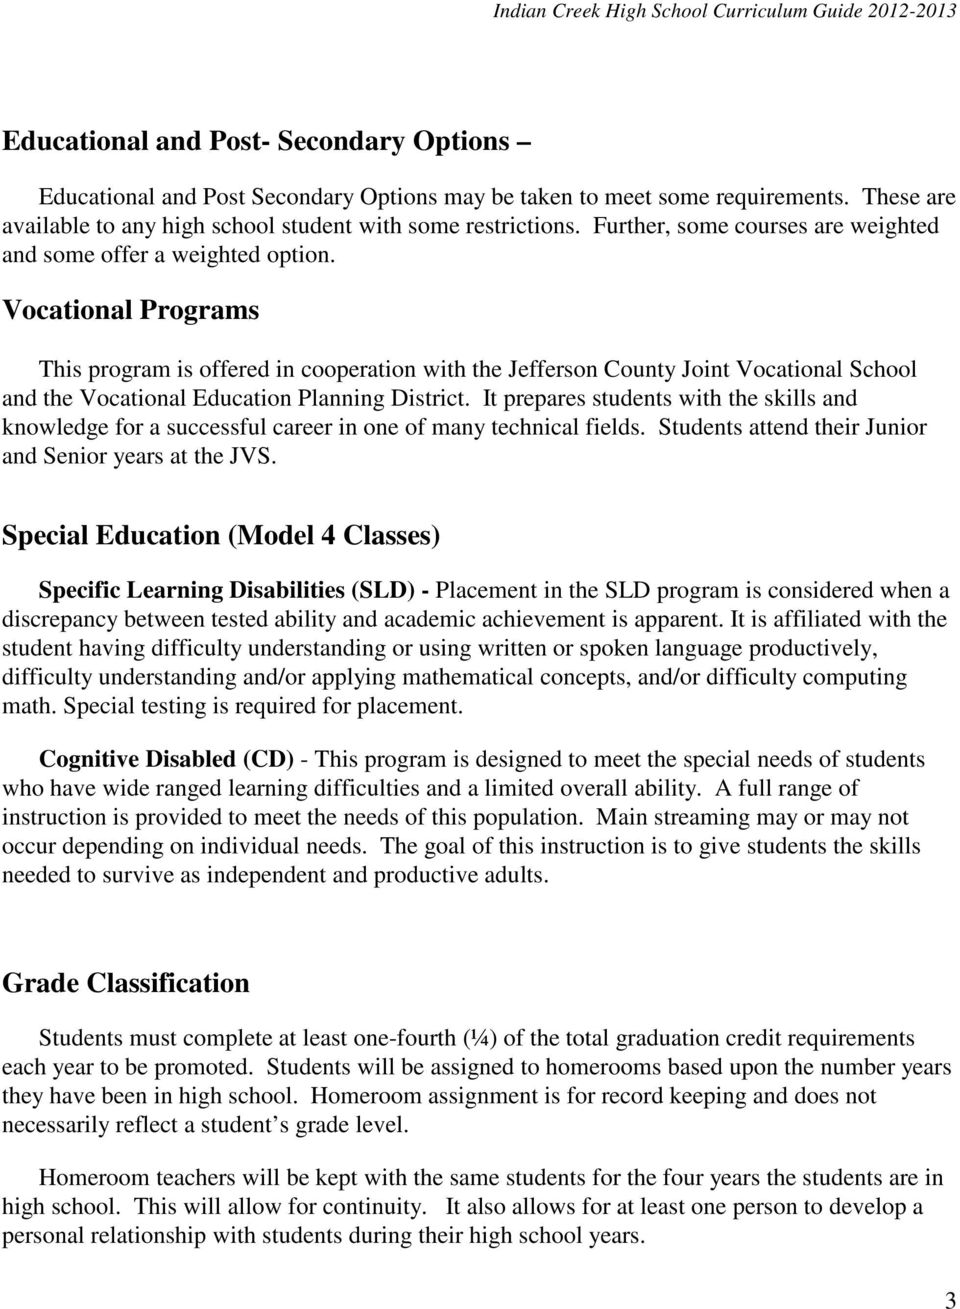 Vocational Programs This program is offered in cooperation with the Jefferson County Joint Vocational School and the Vocational Education Planning District.